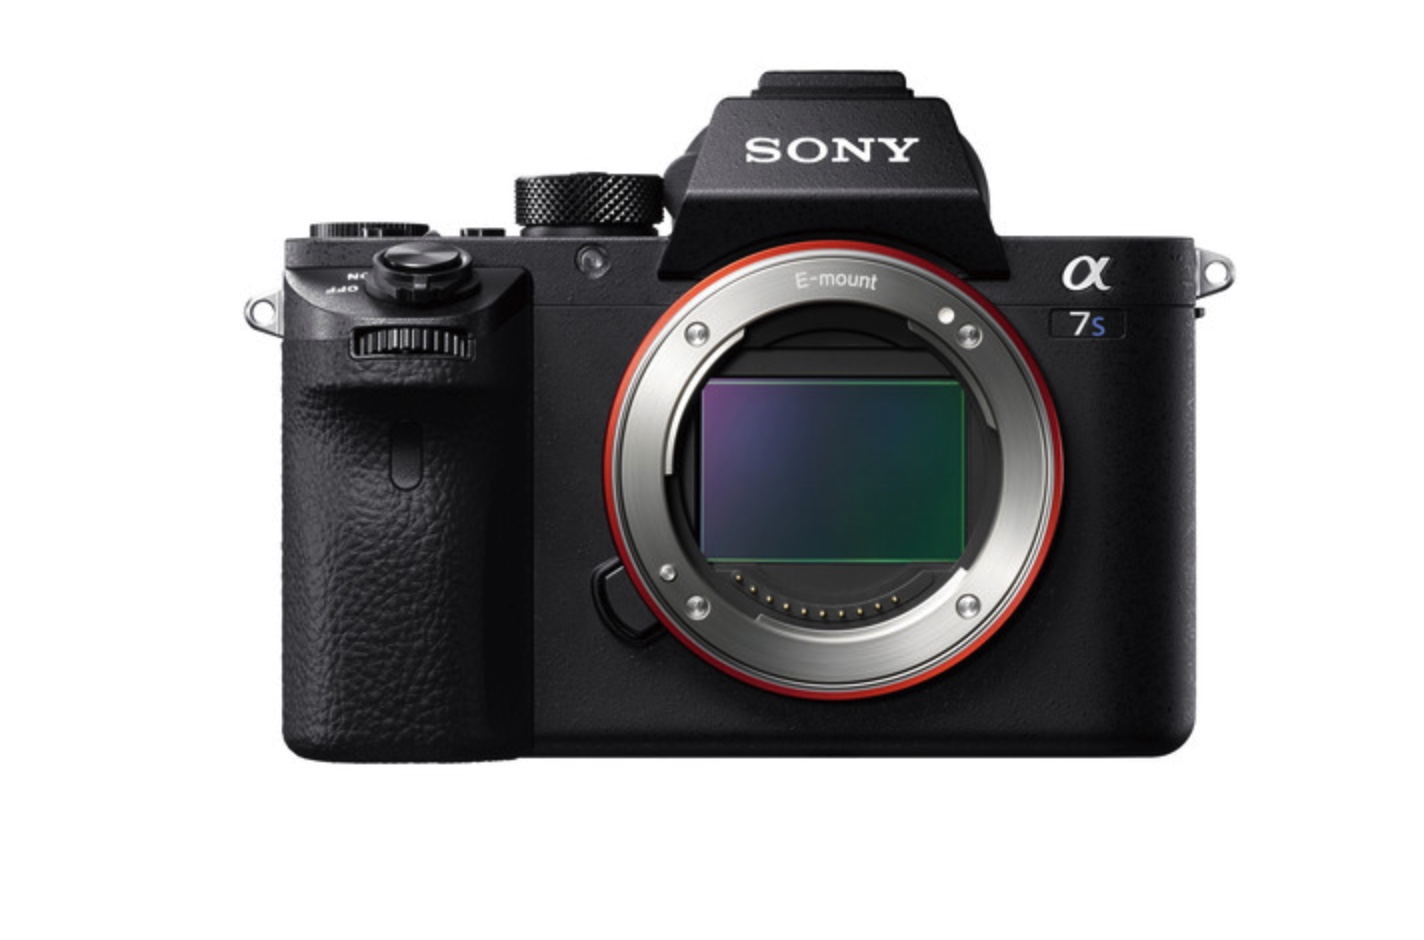 http://thedigitalstory.com/2015/09/15/sony-a7s-2-front.jpg